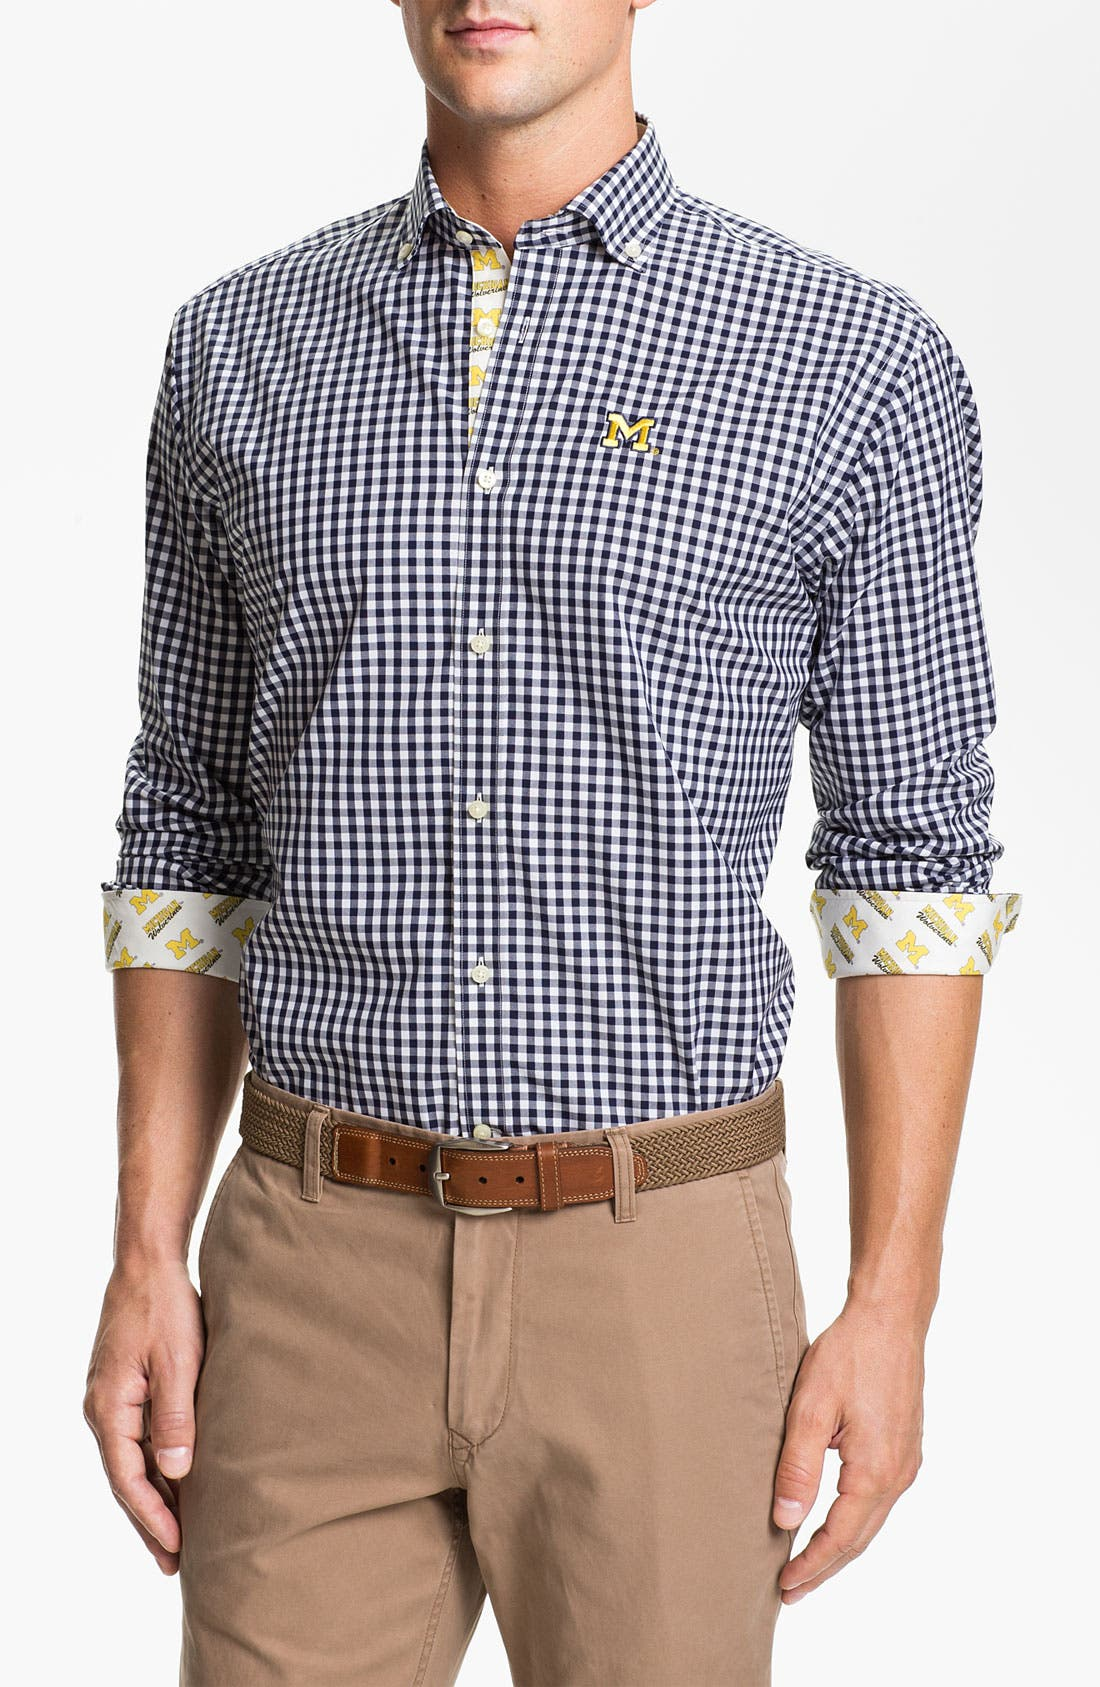 Alternate Image 1 Selected - Thomas Dean 'University of Michigan' Gingham Sport Shirt